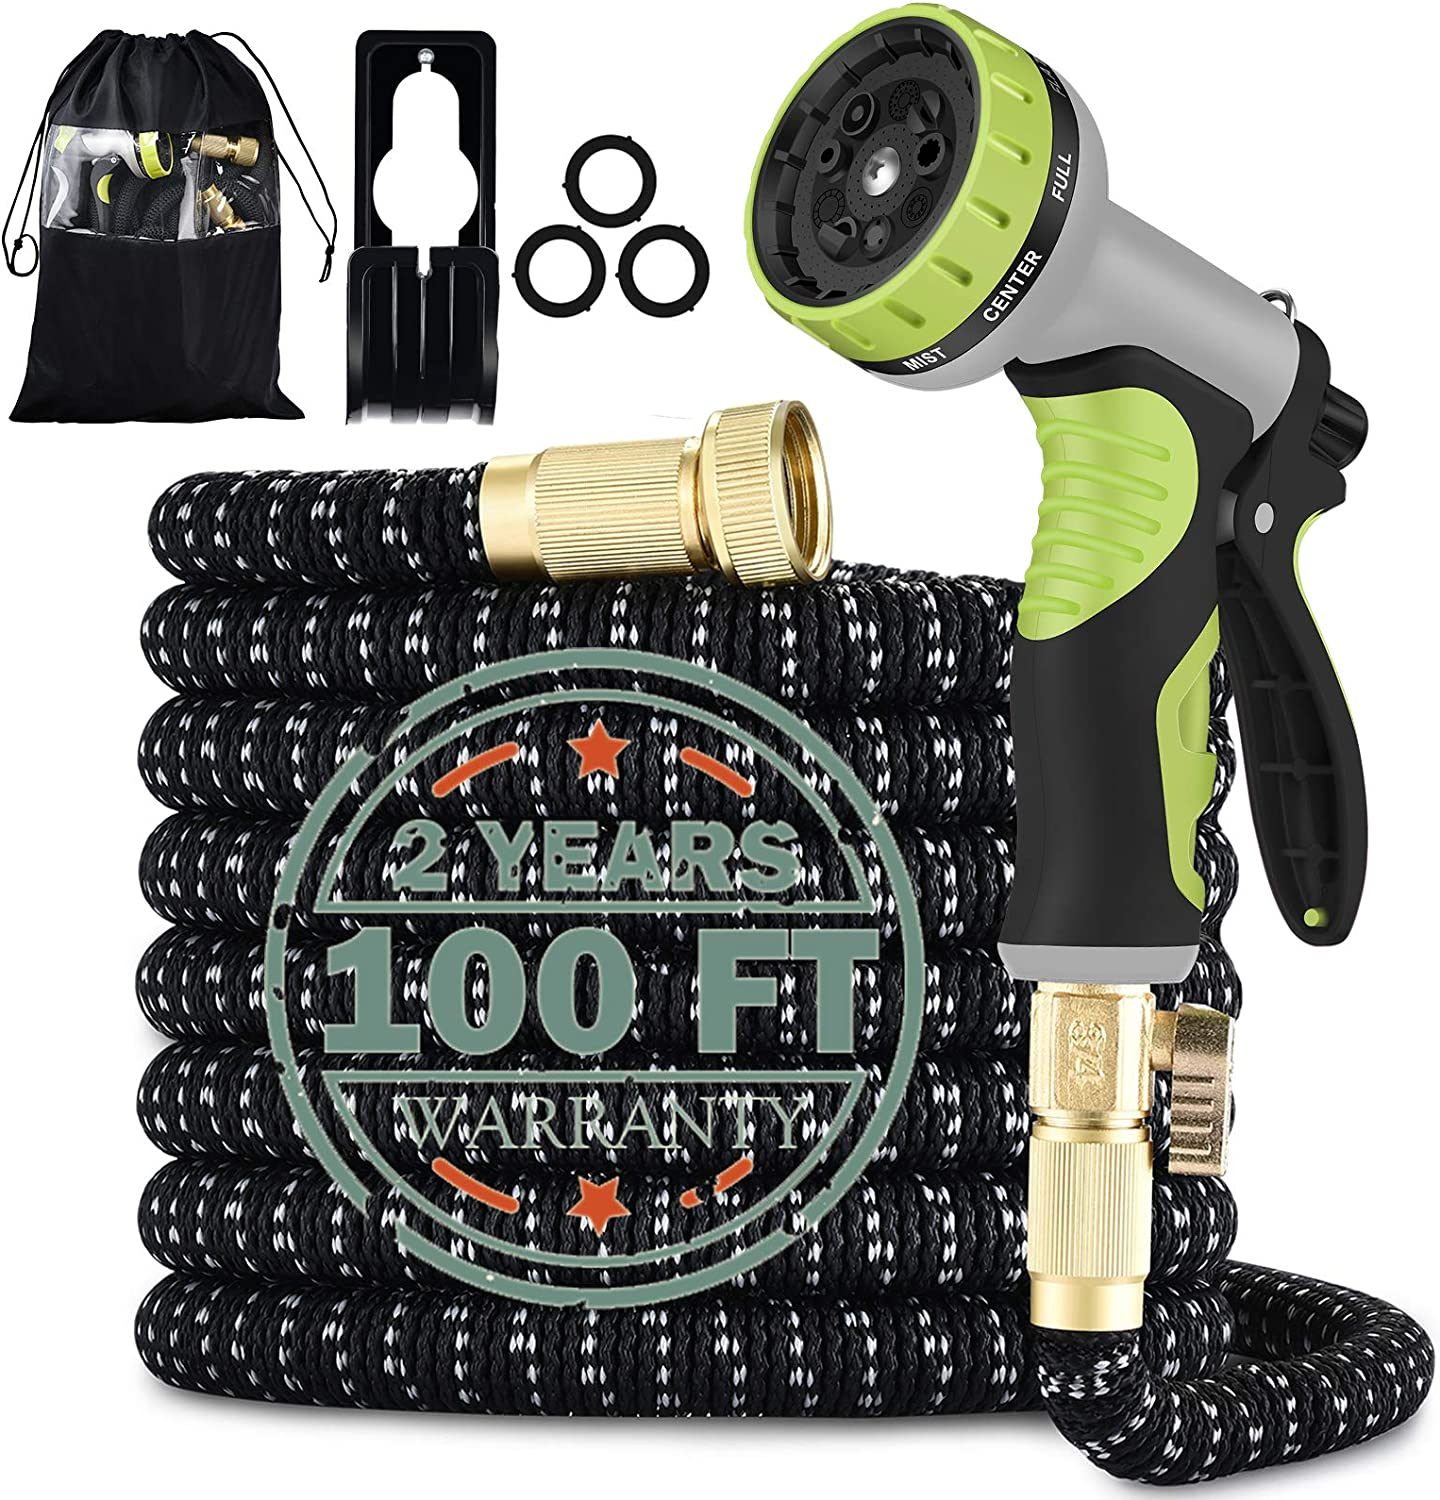 100FT Expandable Garden Hose with 9 Function High Pressure Nozzle, Lightweight Water Hose with Durable 3-Layers Latex Core & 3/4